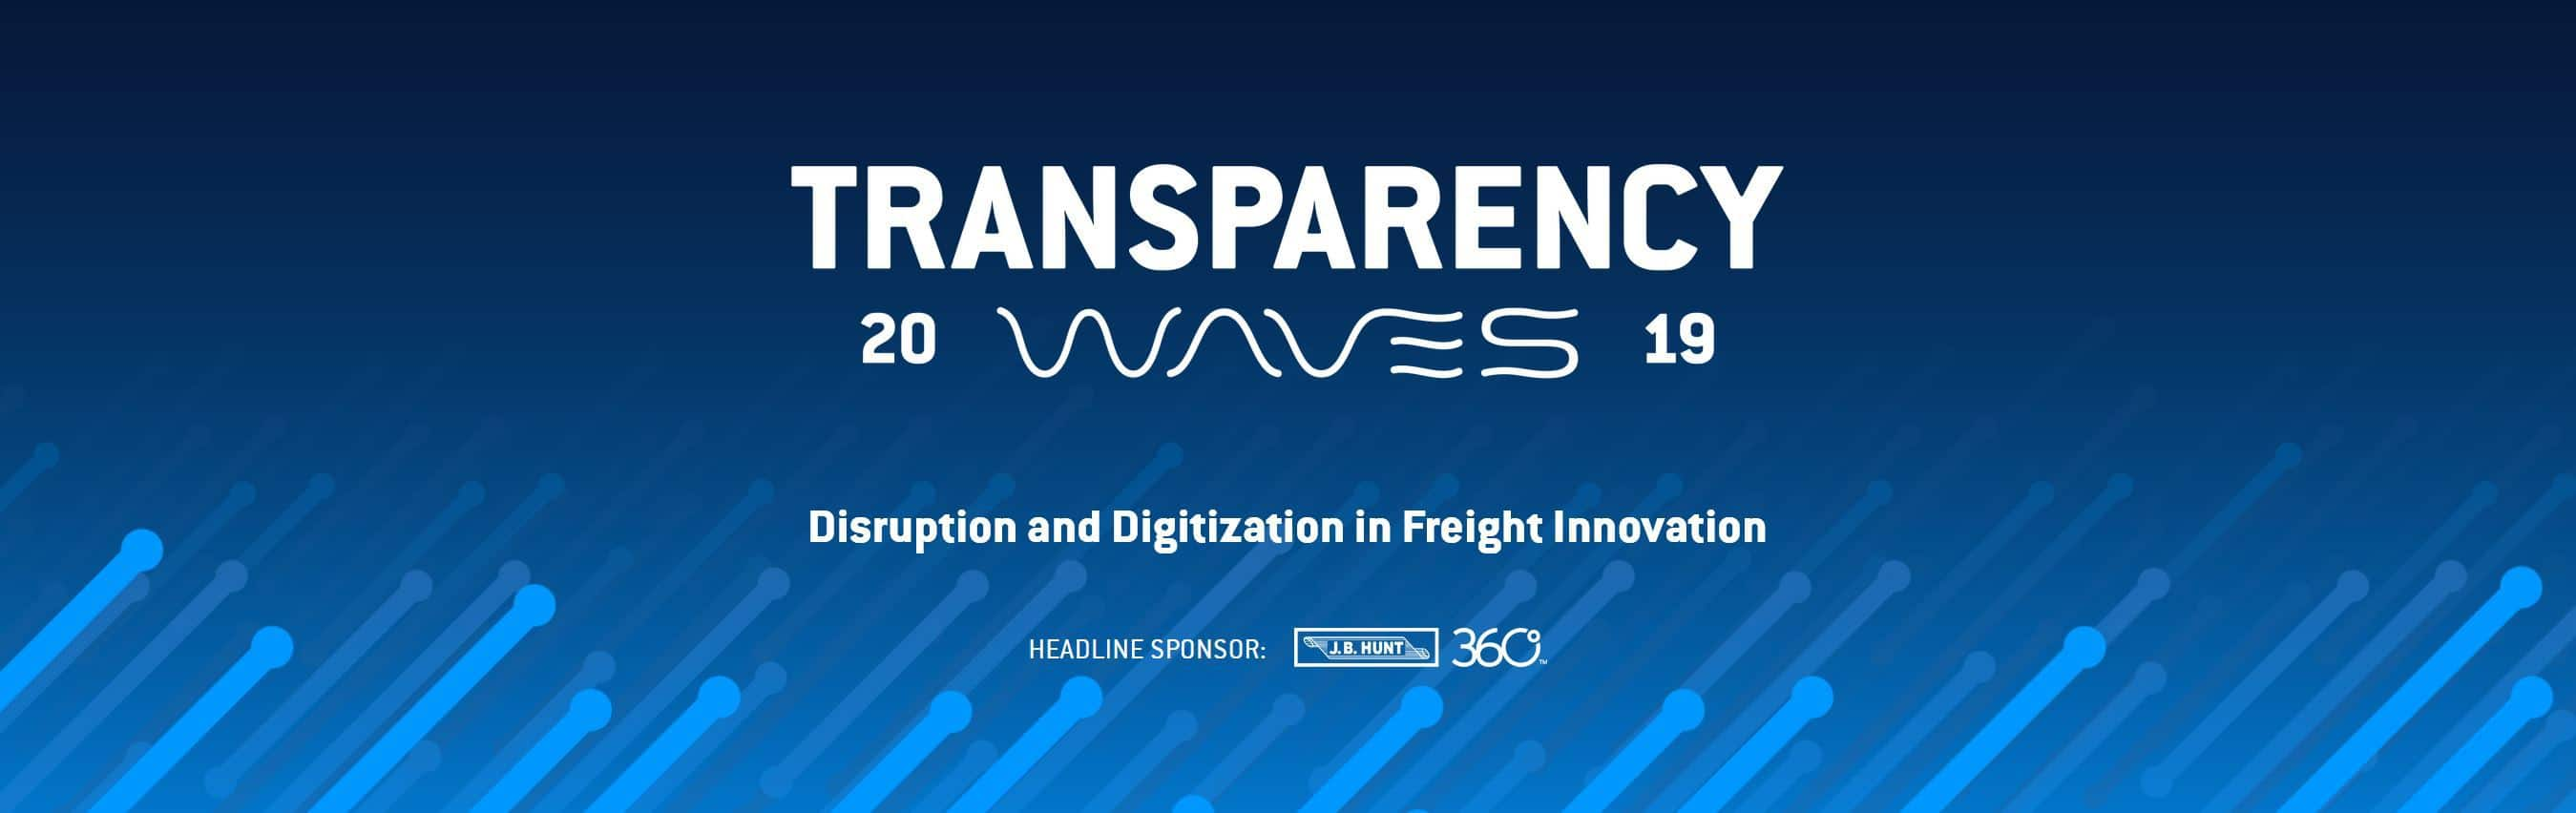 Transparency19 - FreightWaves